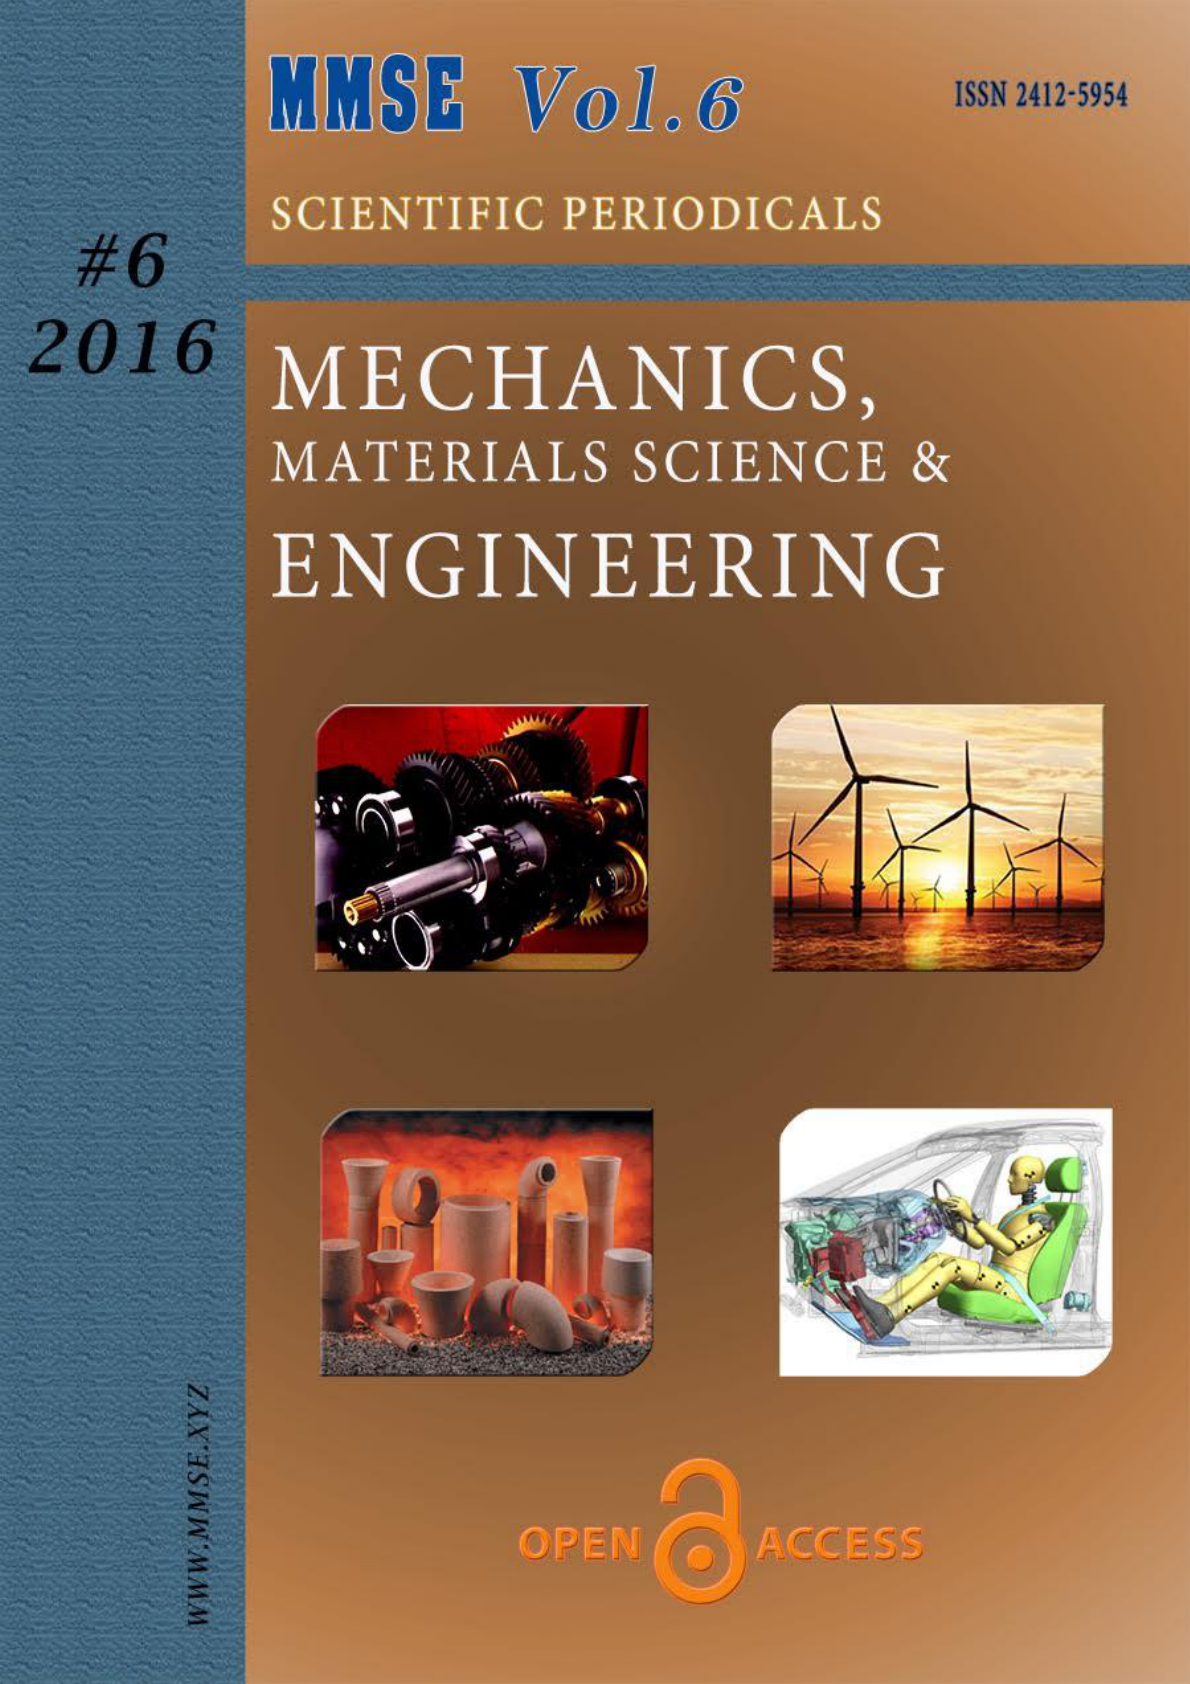 180e2e2a542 MMSE journal Vol. 6 in HTML format